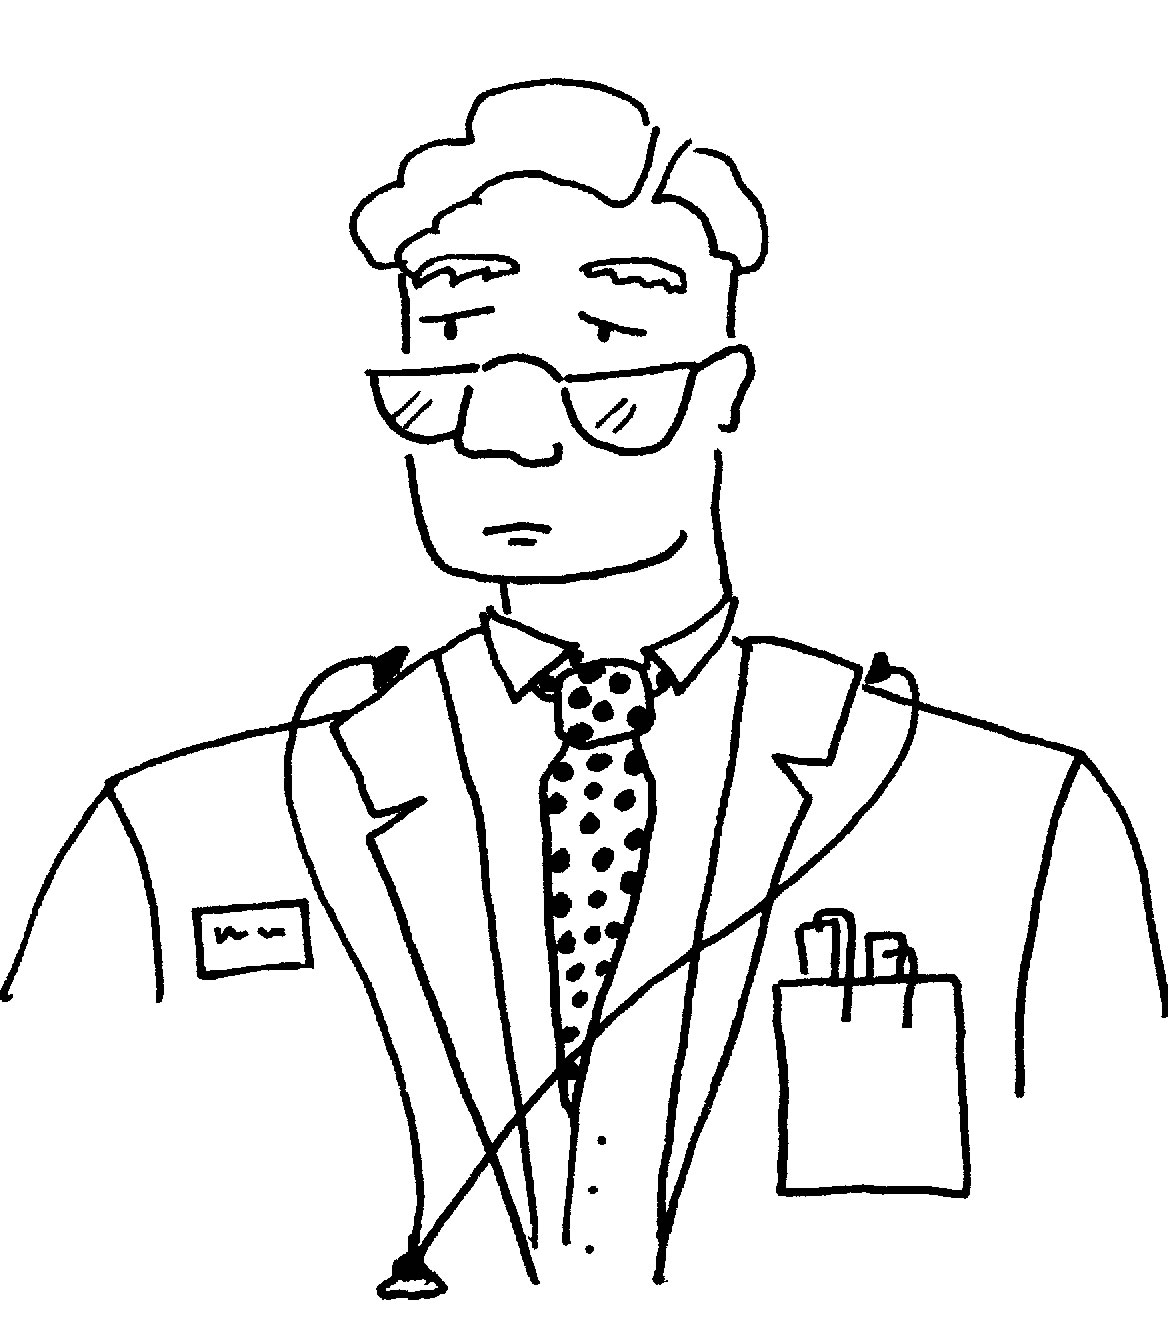 Community service coloring pages ~ Aneurin Bevan University Health Board | Learning ...